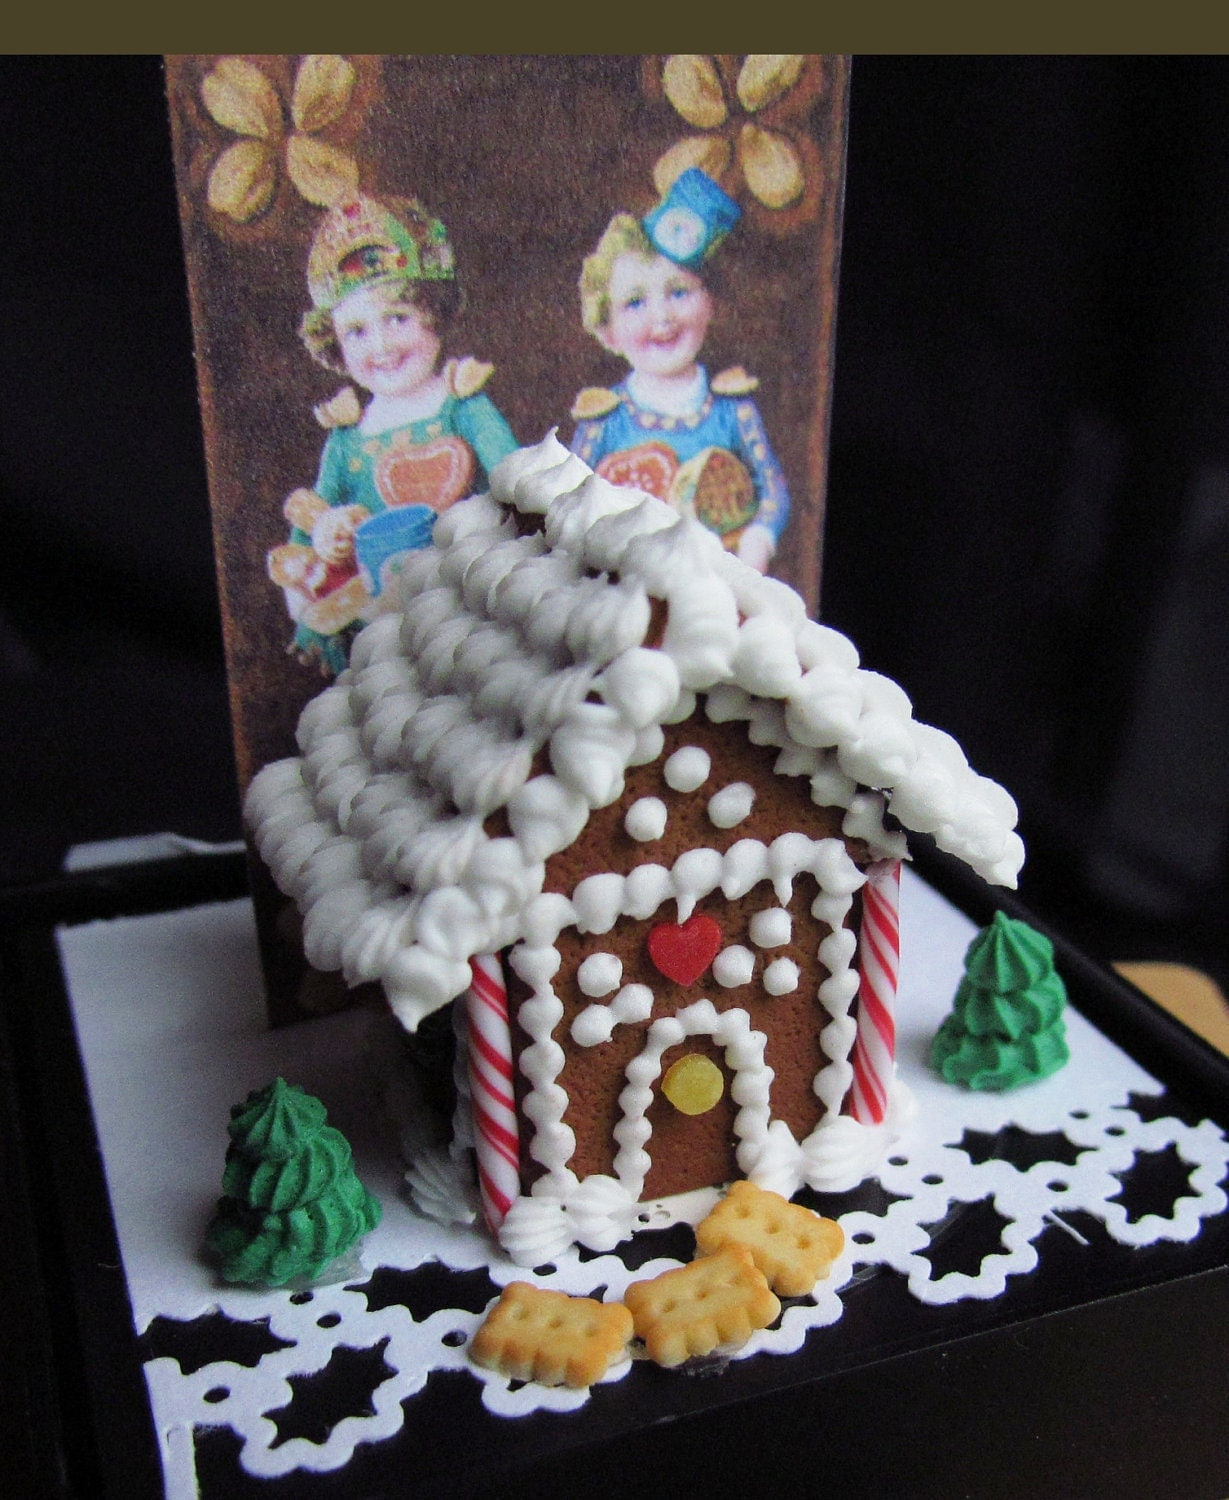 CDHM Artisan Betsy Niederer Miniatures, IGMA Fellow, 1:12 scale Gingerbread Christmas House for the dollhouse miniature collector